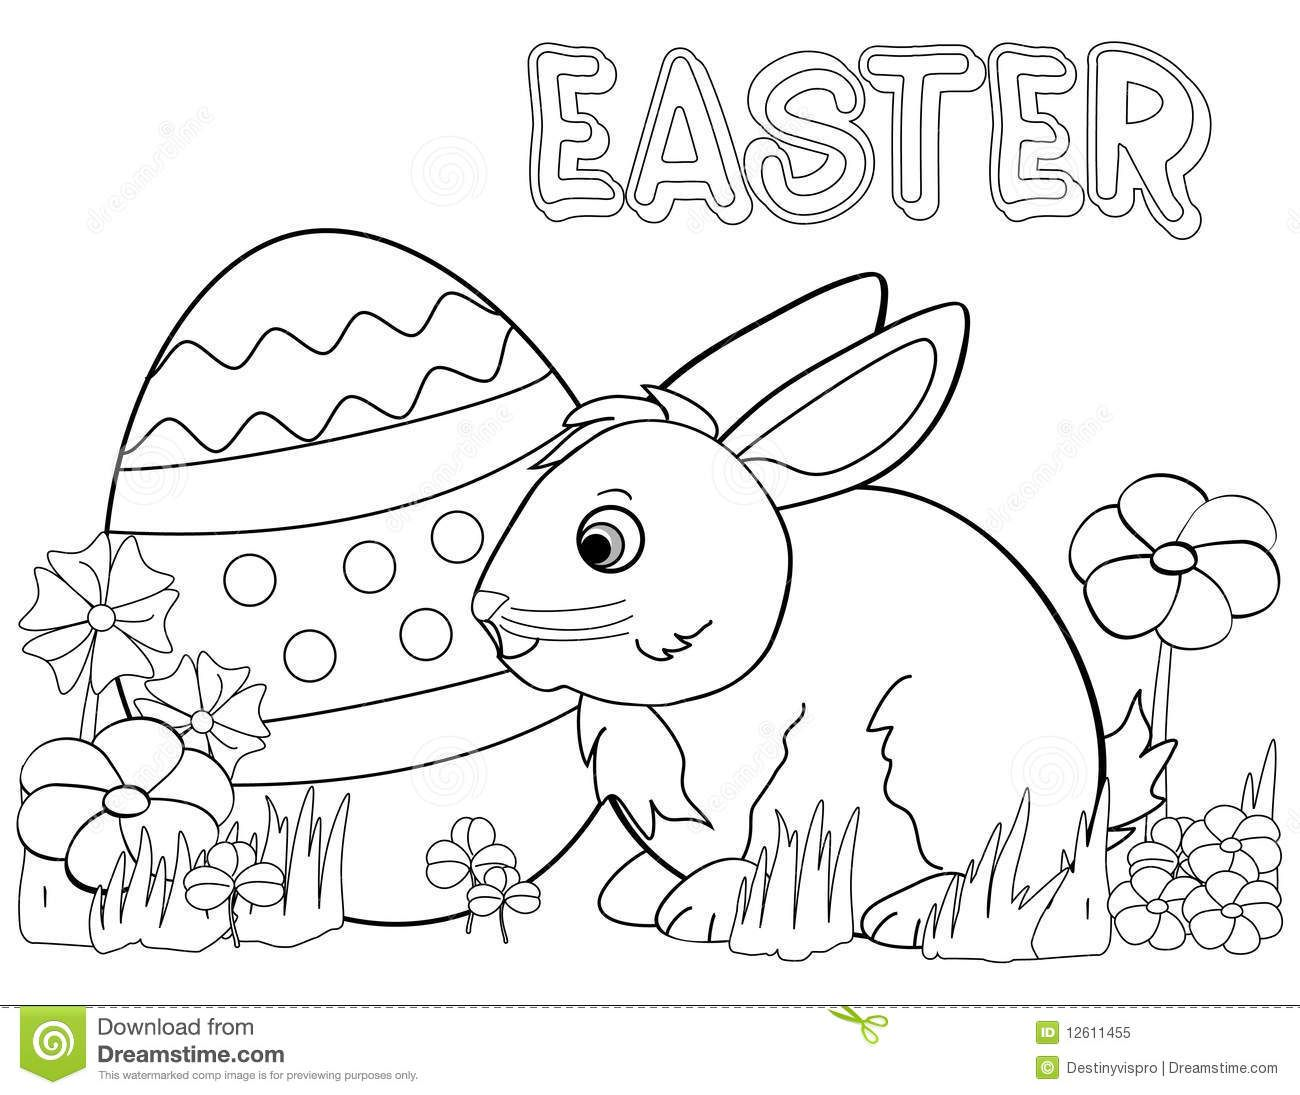 Bunny coloring pictures for easter - Free Printable Easter Bunny Coloring Page For Toddlers Preschool Or Kindergarten Children Enjoy This Happy Easter Bunny Coloring Page